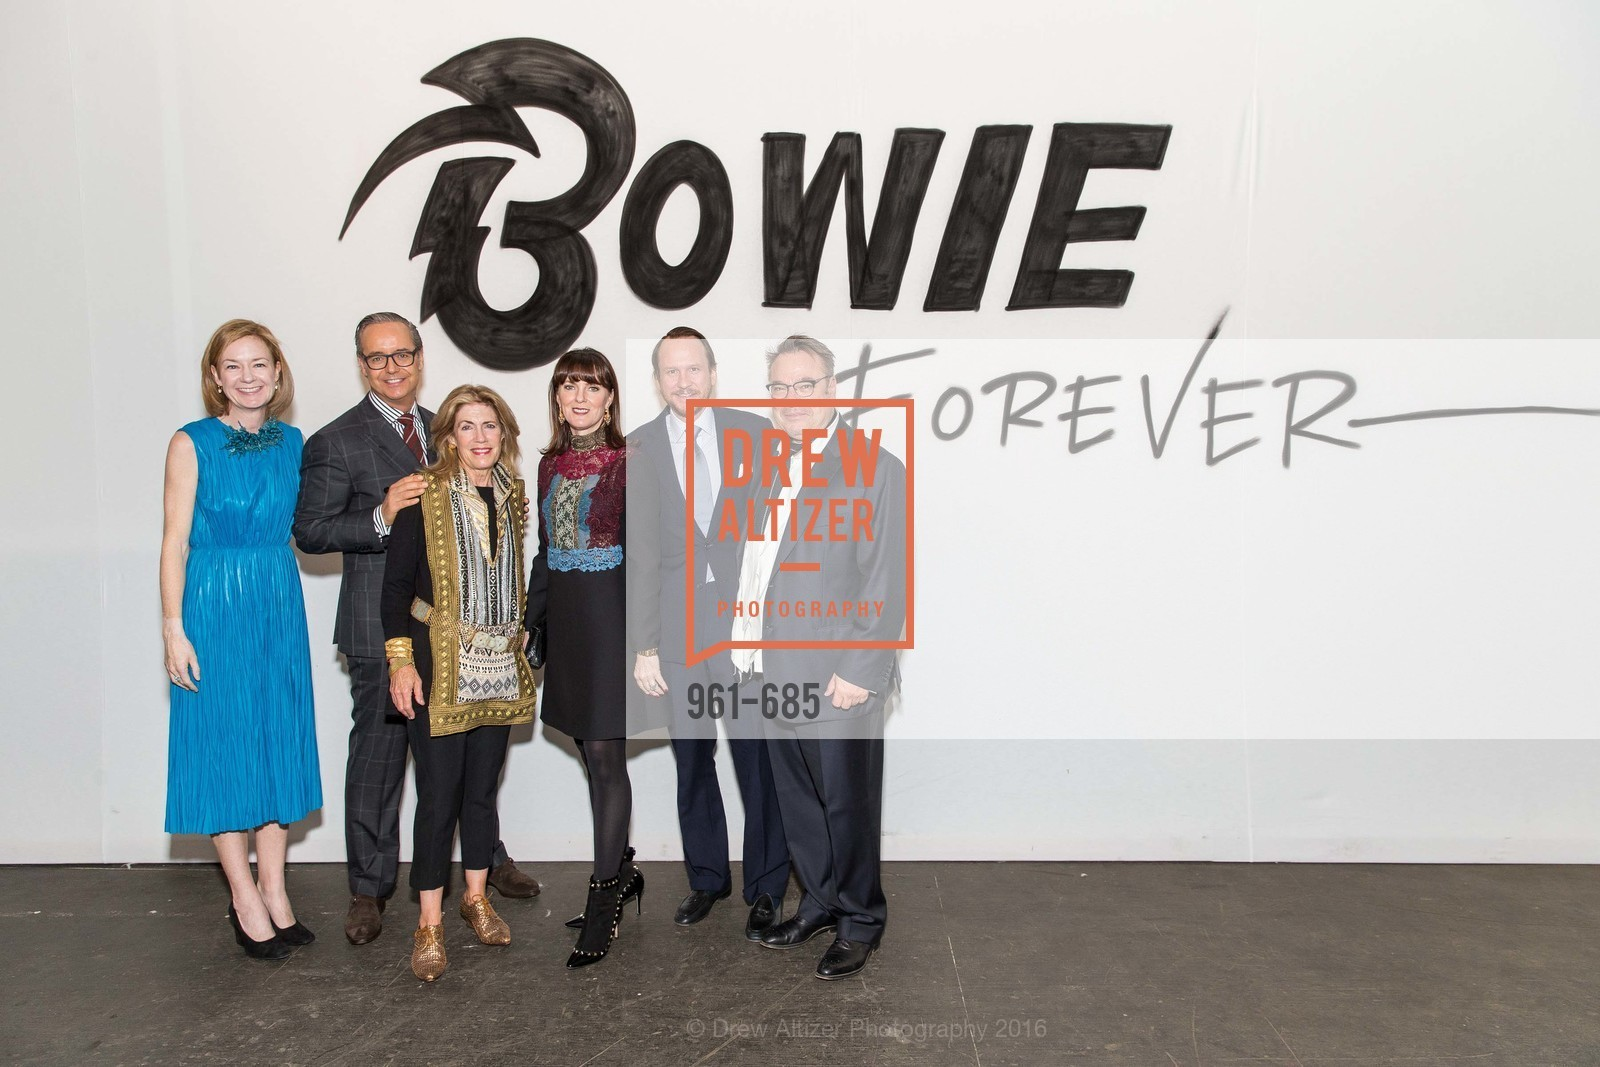 Katie Paige, Douglas Durkin, Cathy Topham, Allison Speer, Roth Martin, Stanlee Gatti, FOG Design+Art Preview Gala, Fort Mason Center Festival Pavilion, January 13th, 2016,Drew Altizer, Drew Altizer Photography, full-service agency, private events, San Francisco photographer, photographer california